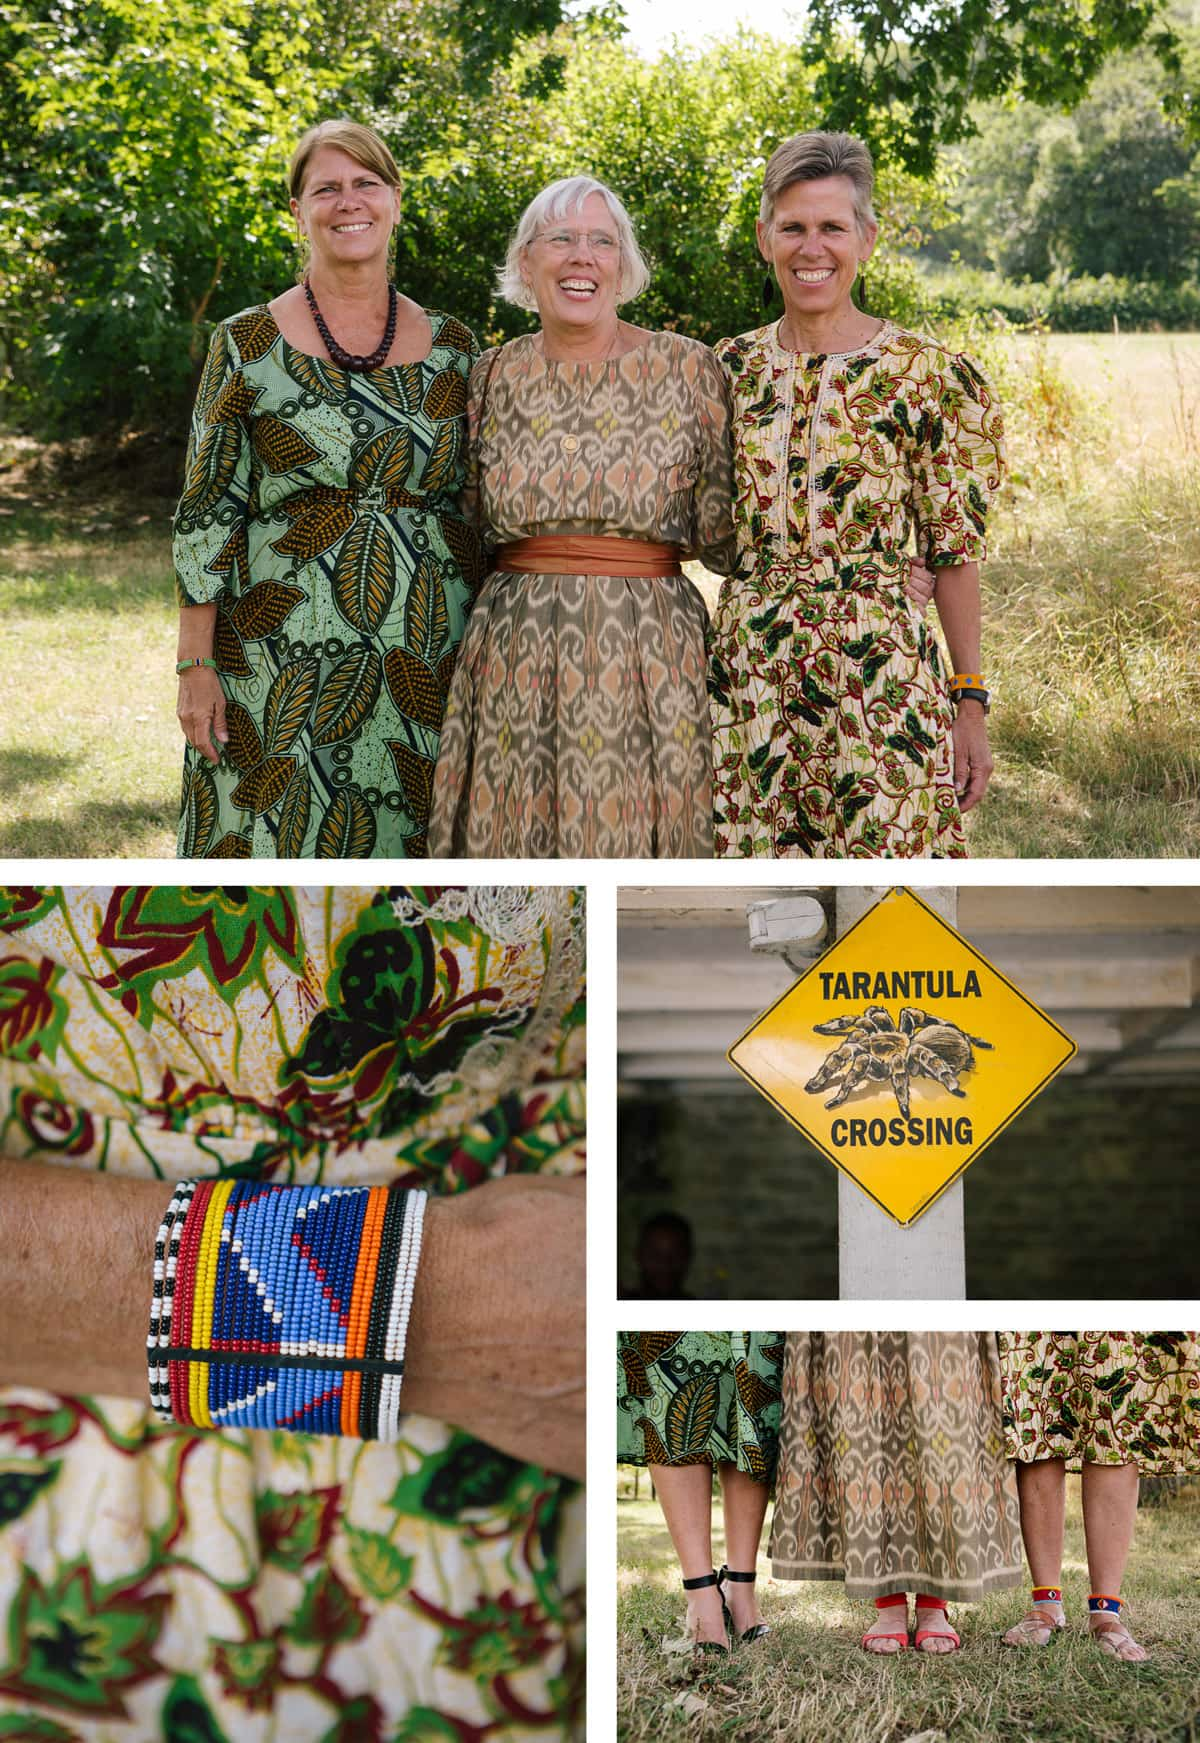 Collage of images from safari-themed wedding. From the top: Bride and guests in brightly patterned dresses; yellow 'tarantula crossing' sign; close up of the bottoms of guests' dresses; colourful African beaded bracelet